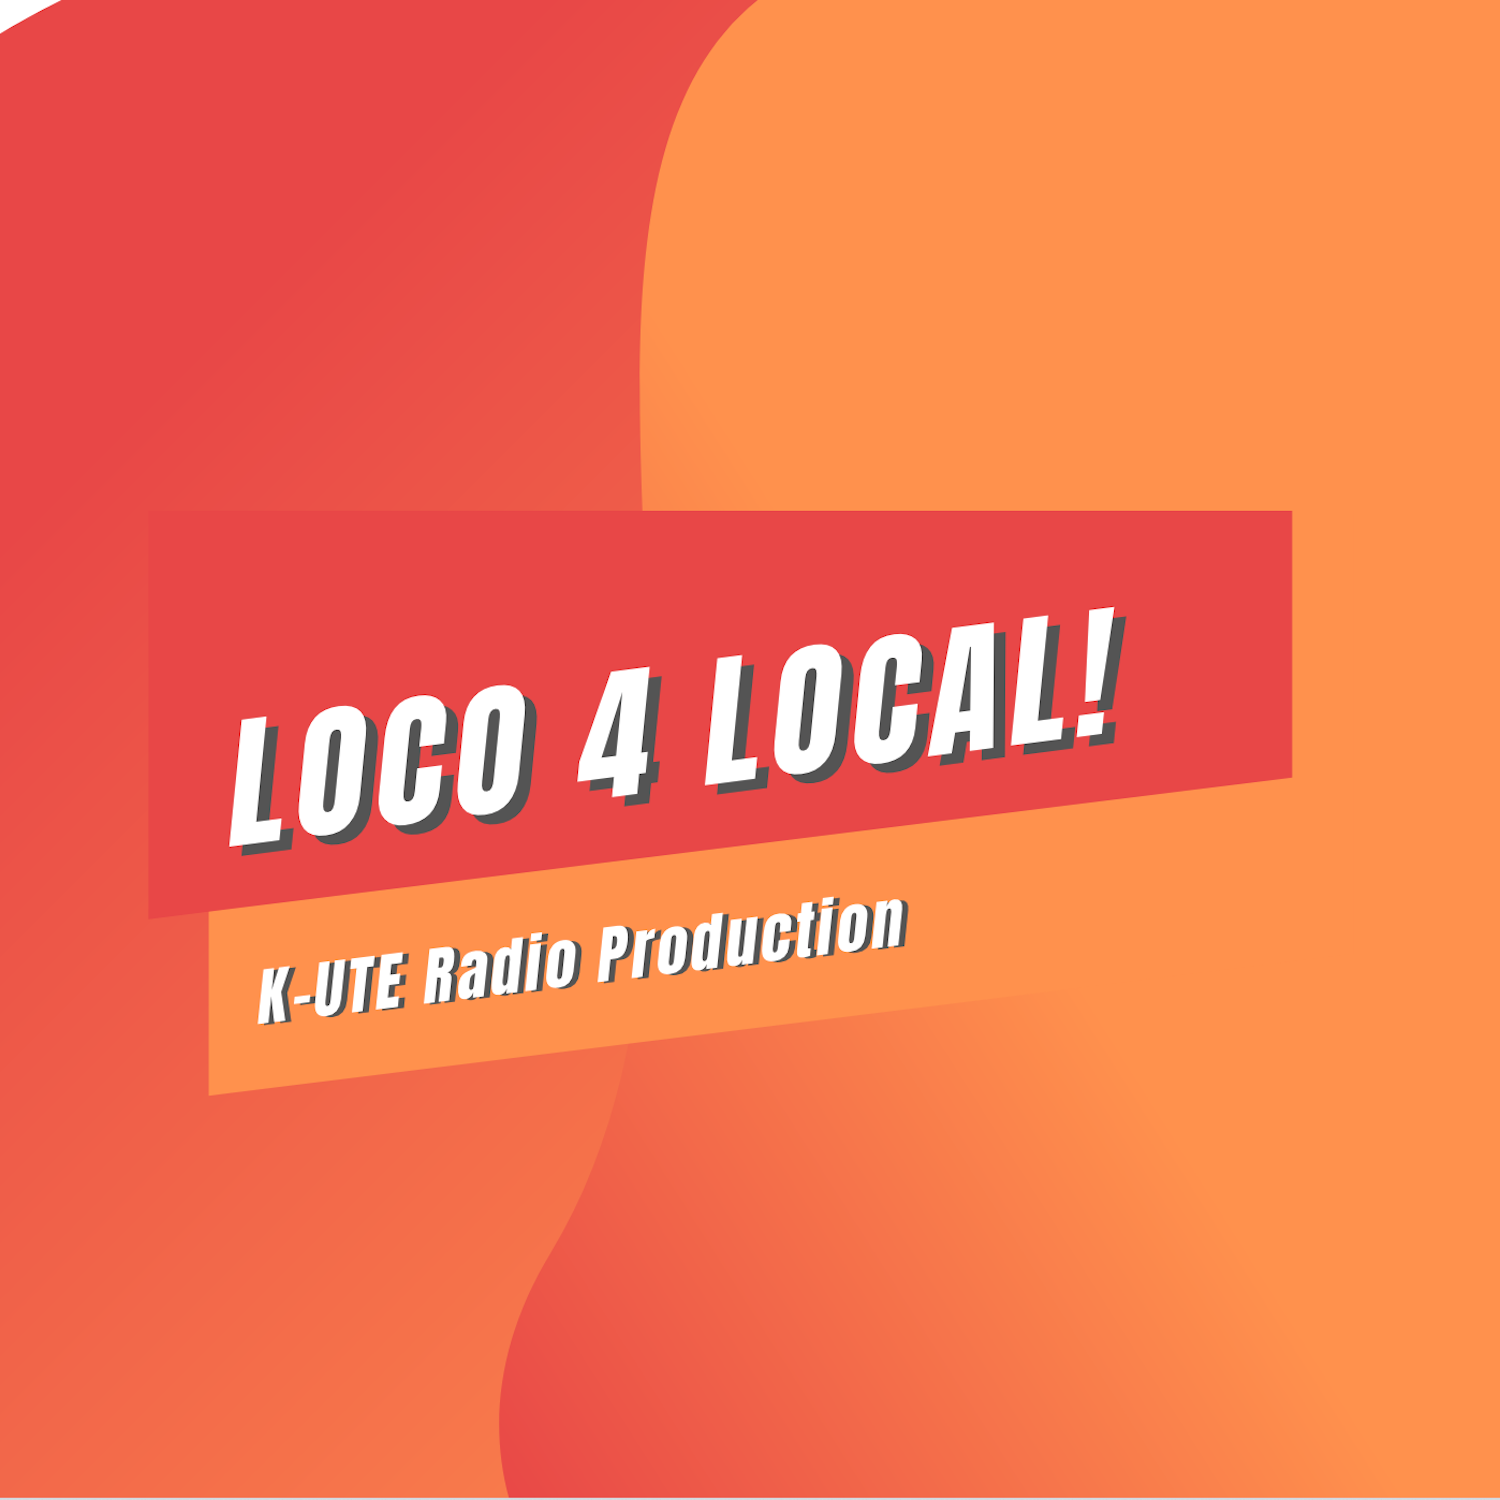 Artwork for podcast Loco For Local!